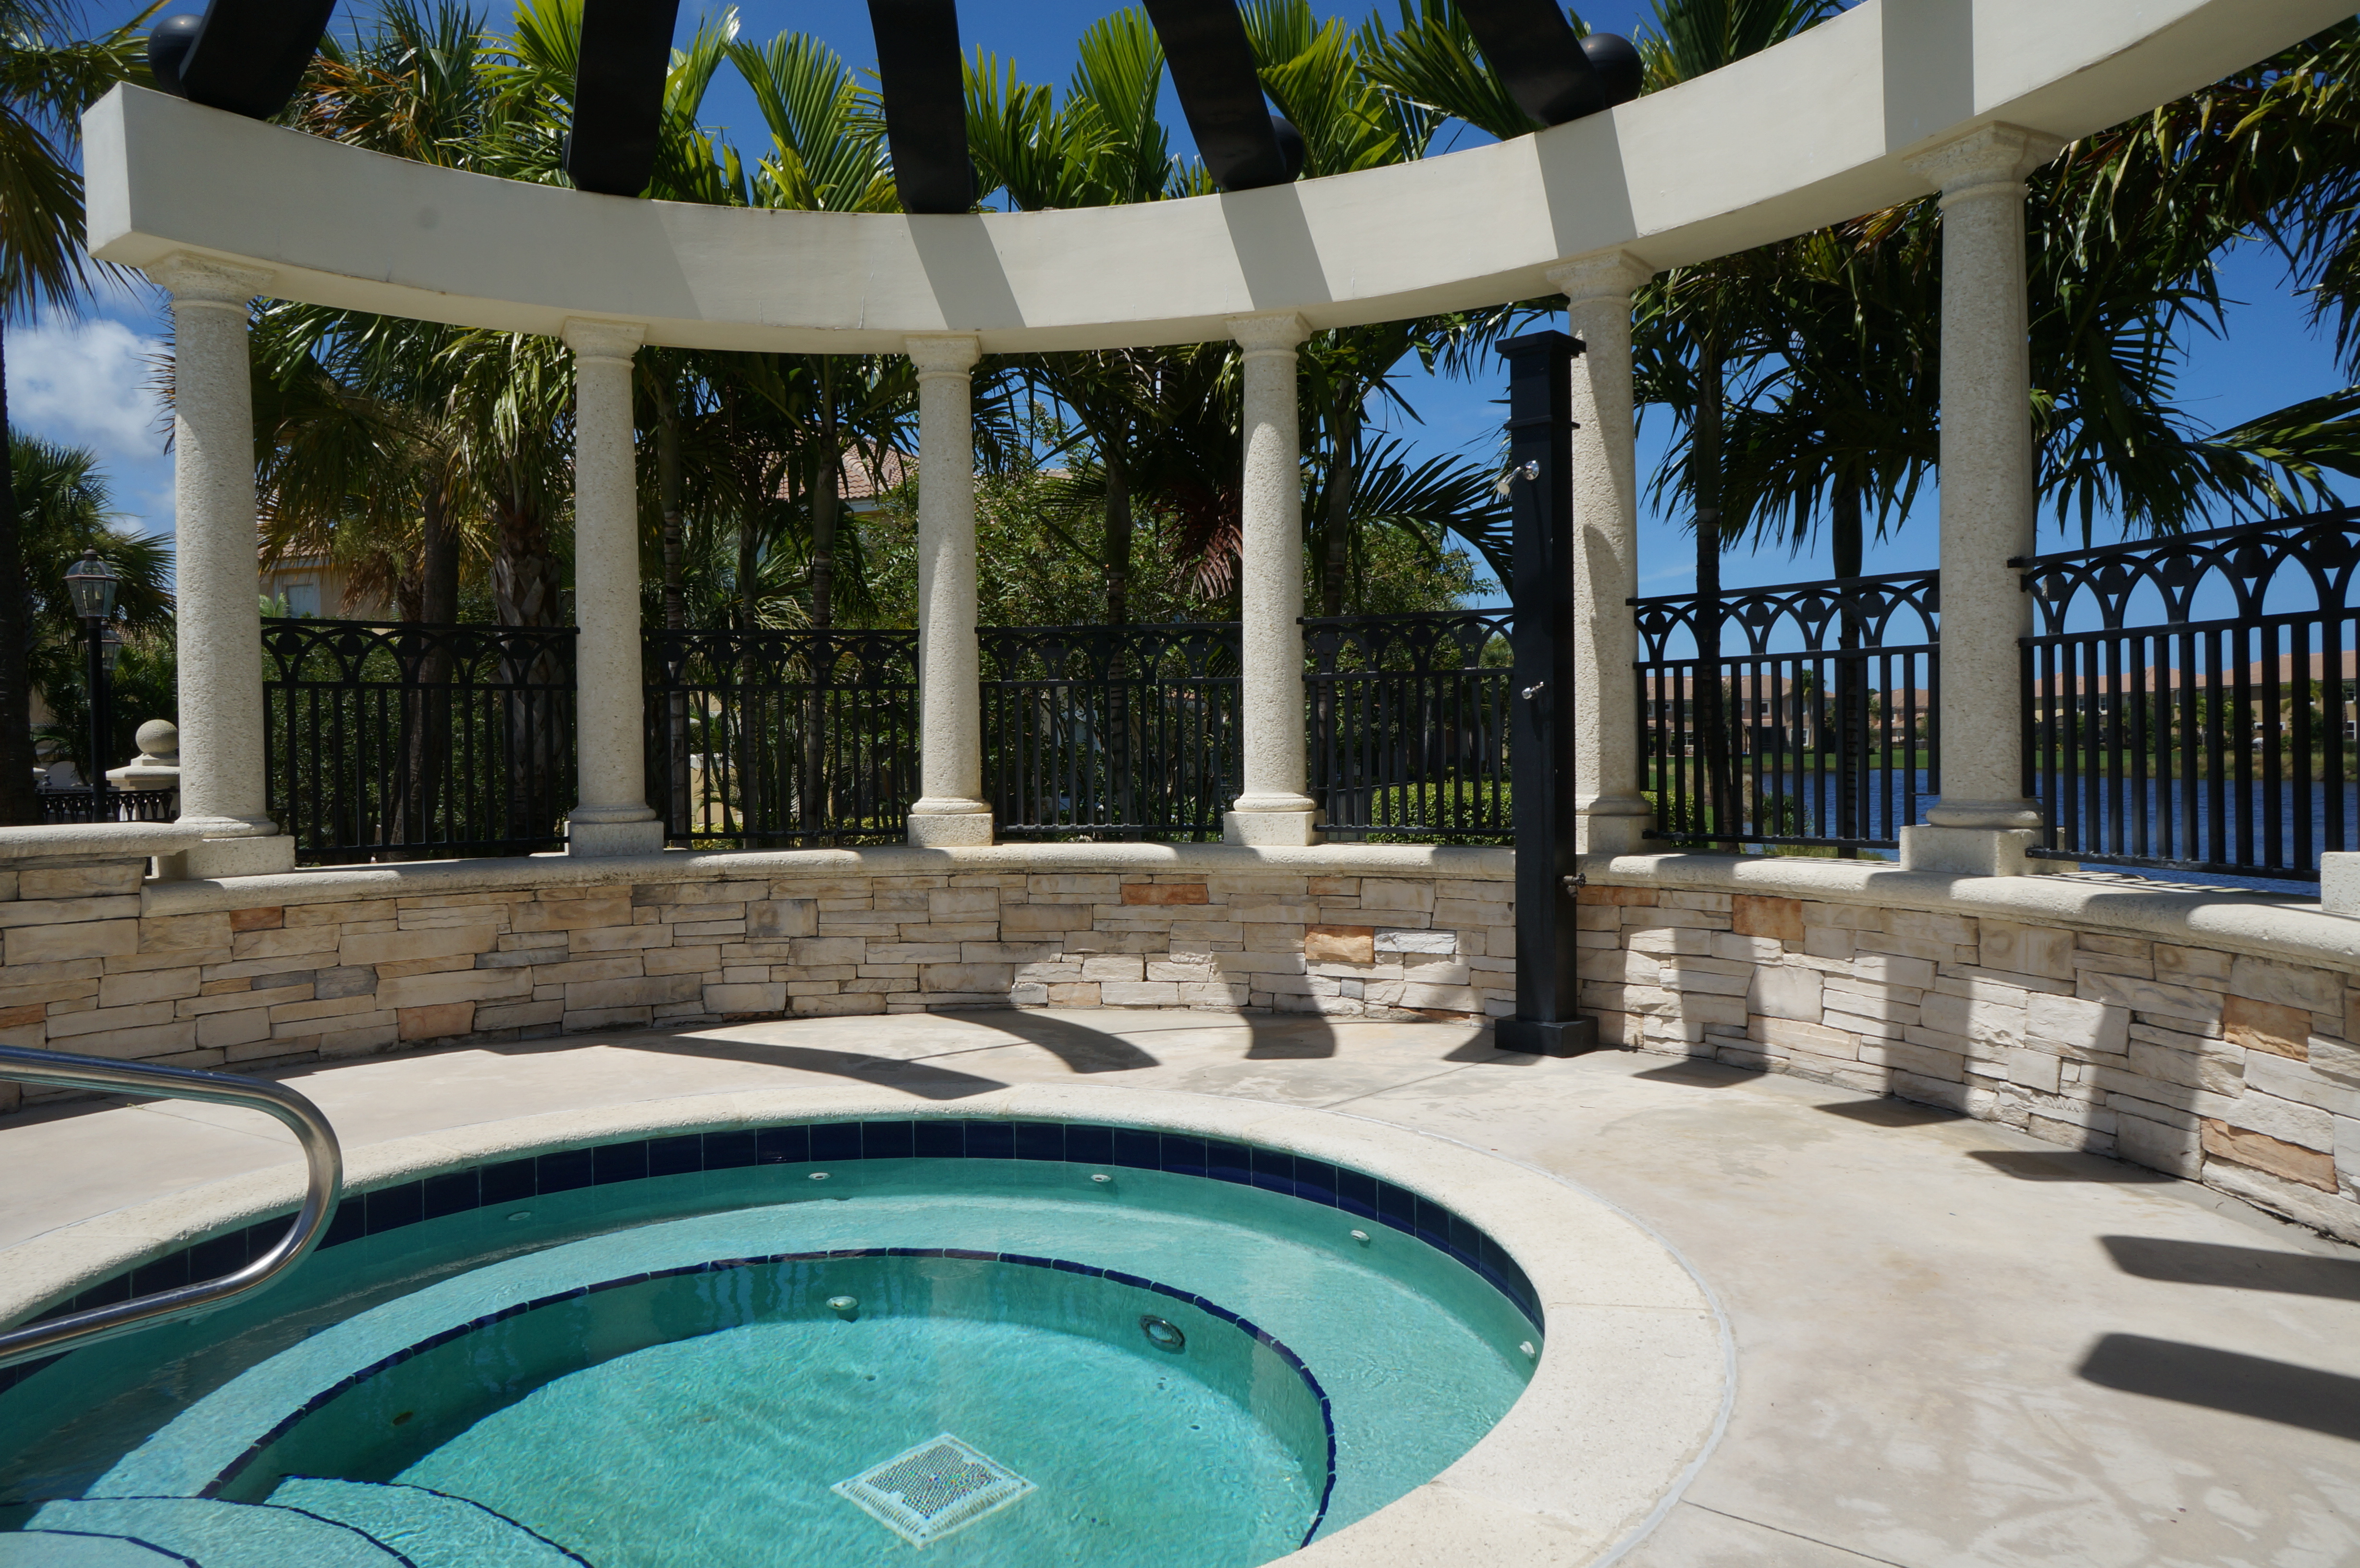 Paloma Community Pool Palm Beach Gardens